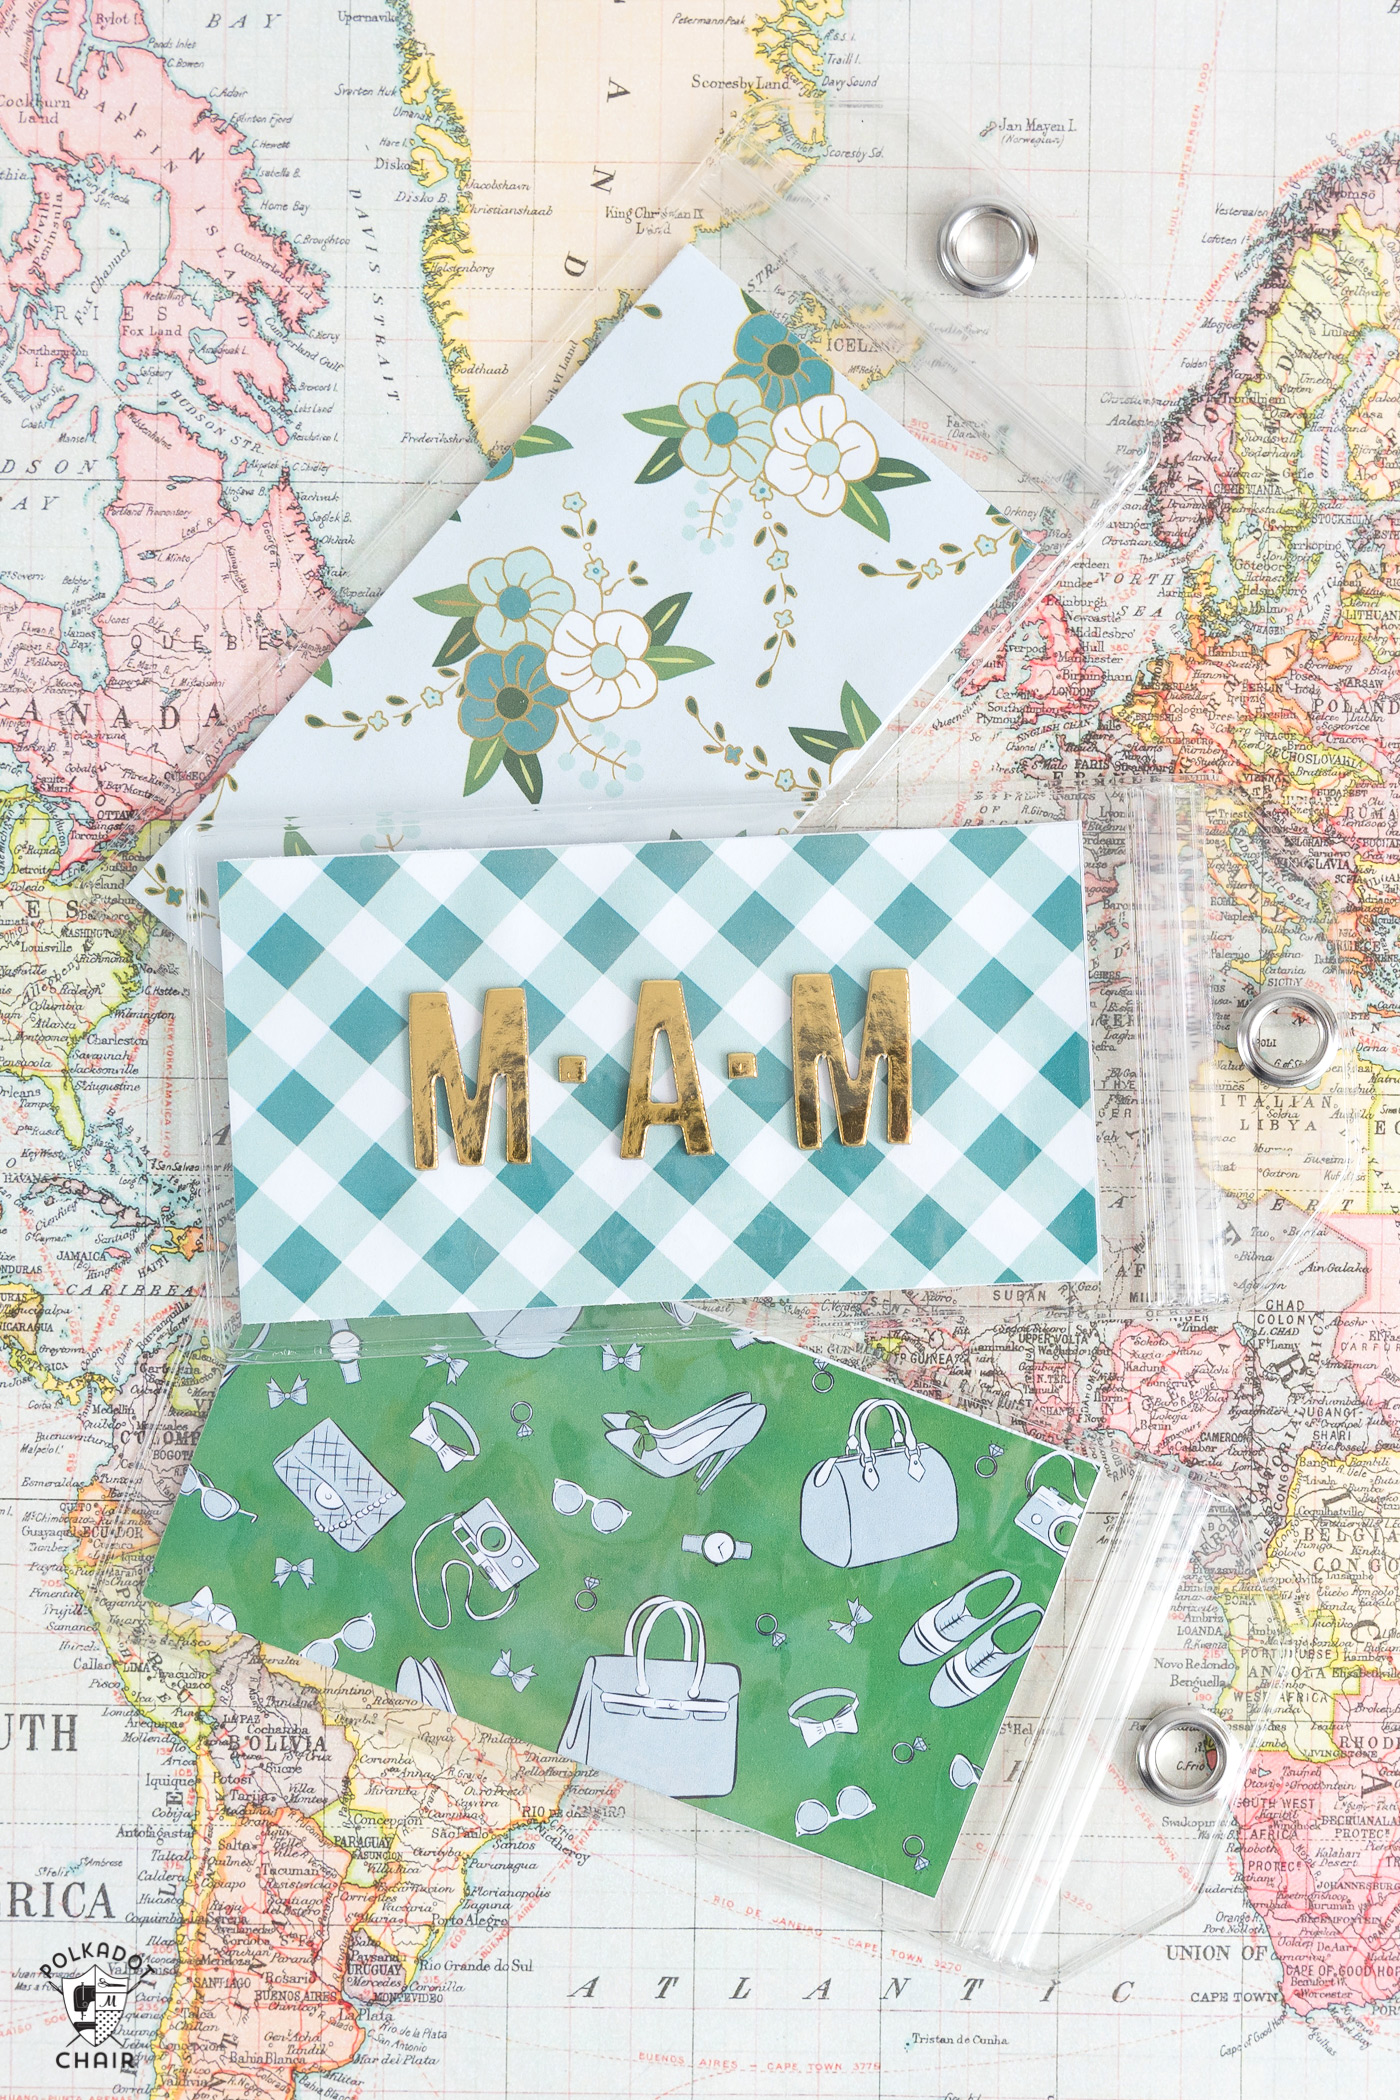 photograph relating to Printable Luggage Tags called Do-it-yourself Baggage Tags - The Strategy Place